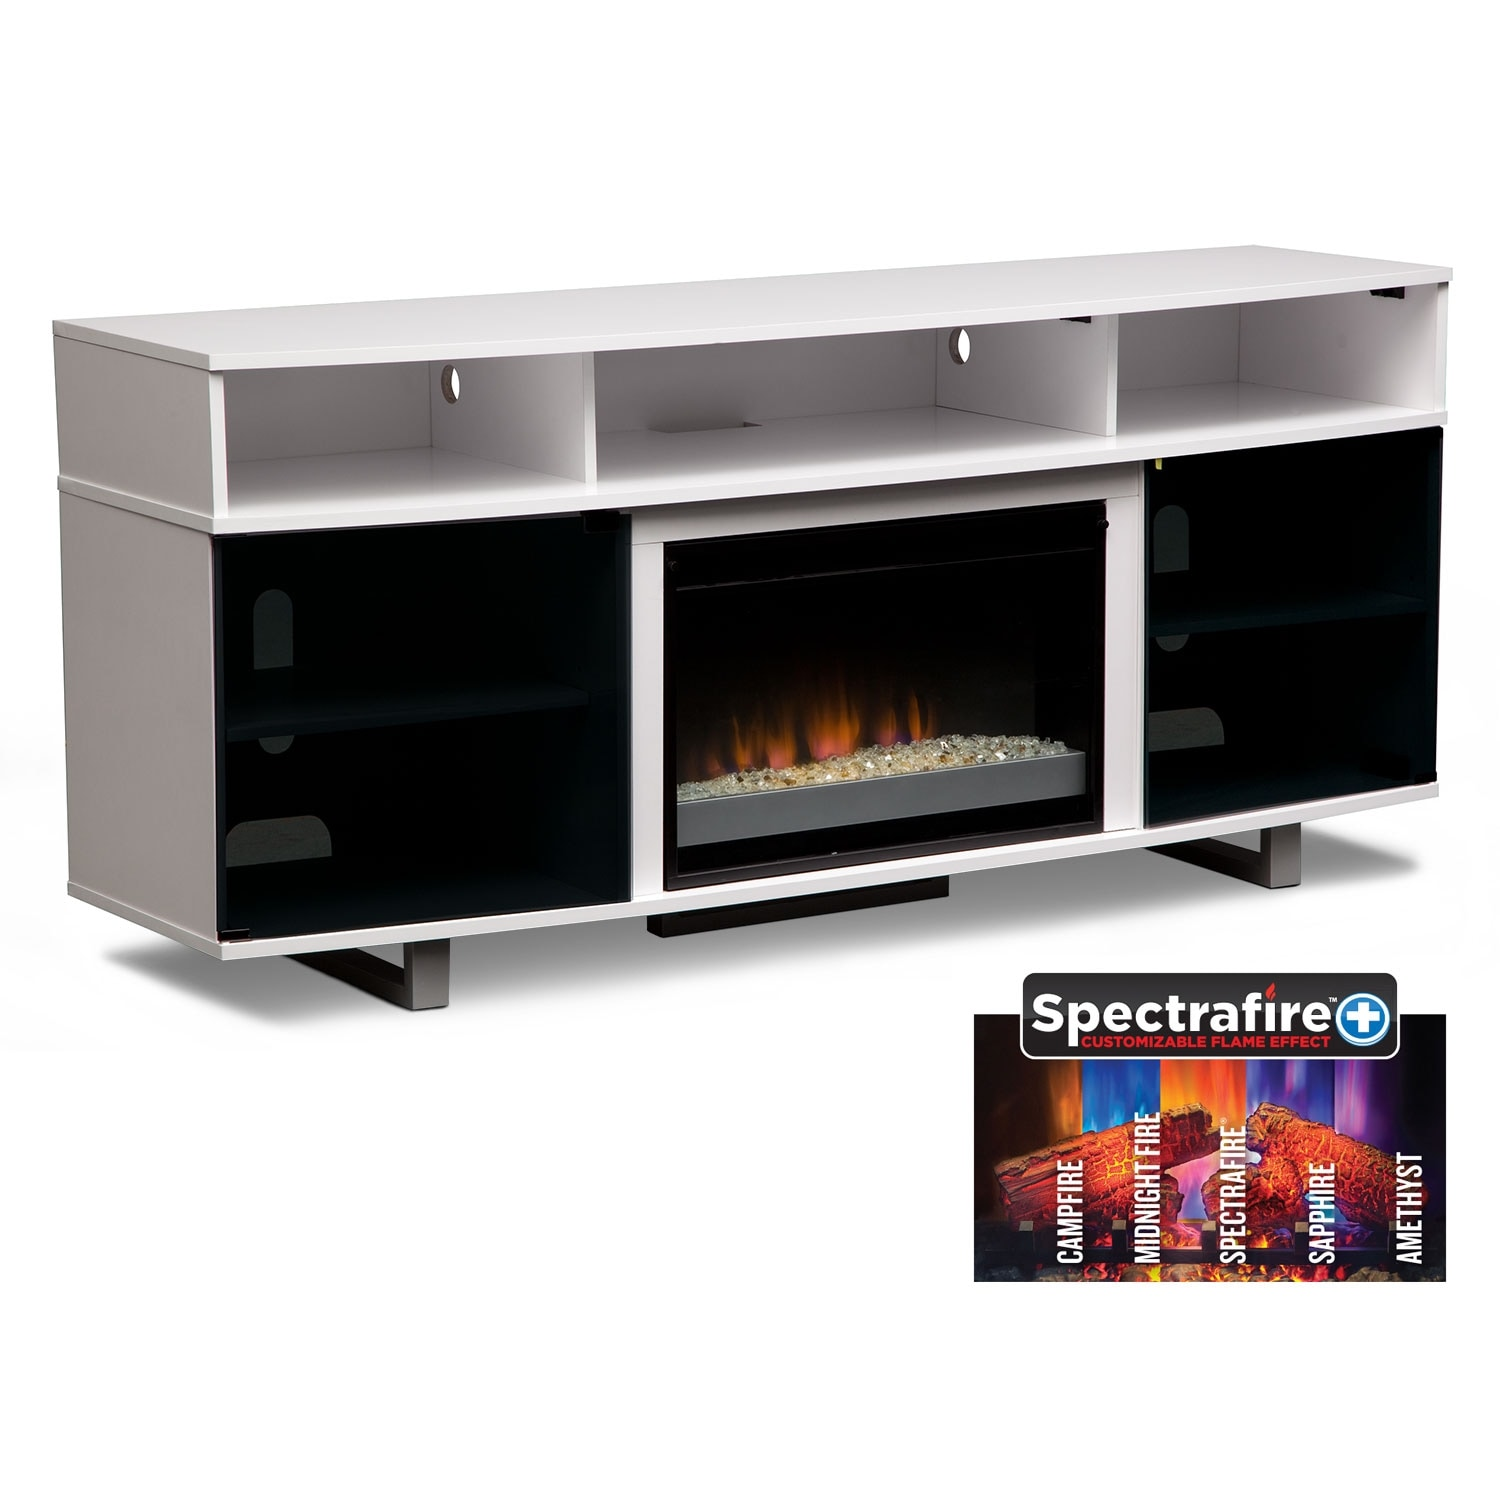 Find Entertainment Centers and TV stands here at Value City. With a wide variety of options